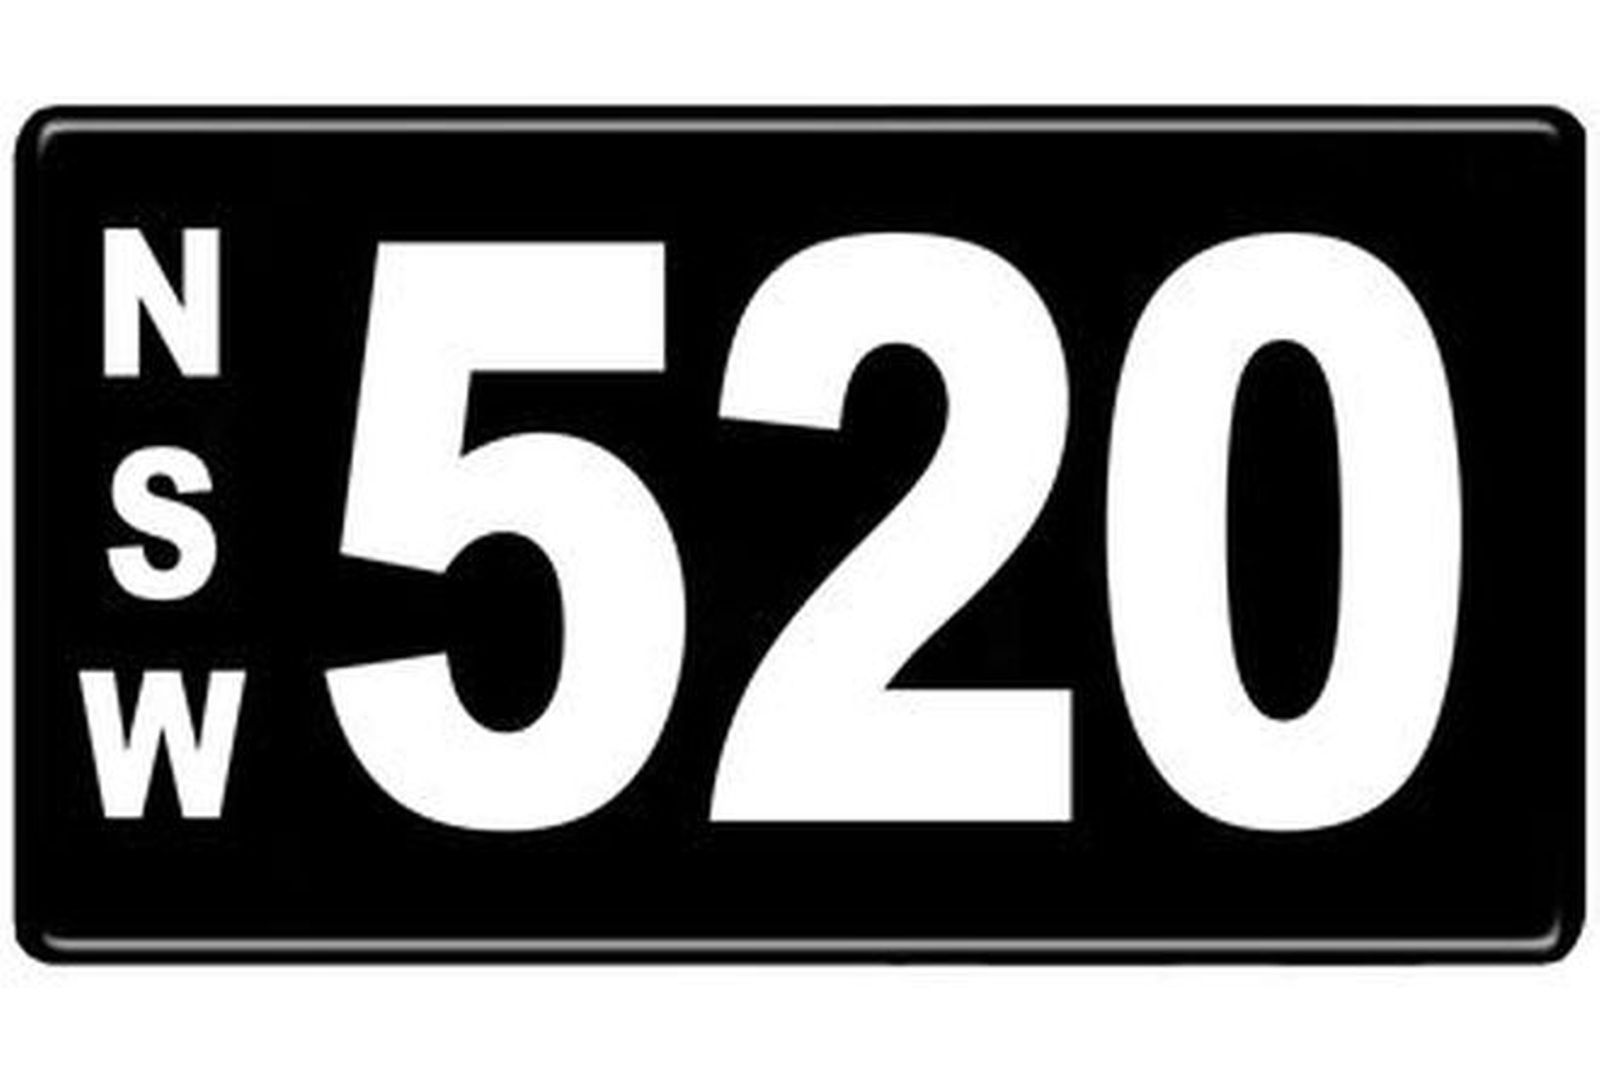 Number Plates - NSW Numerical Number Plates '520'